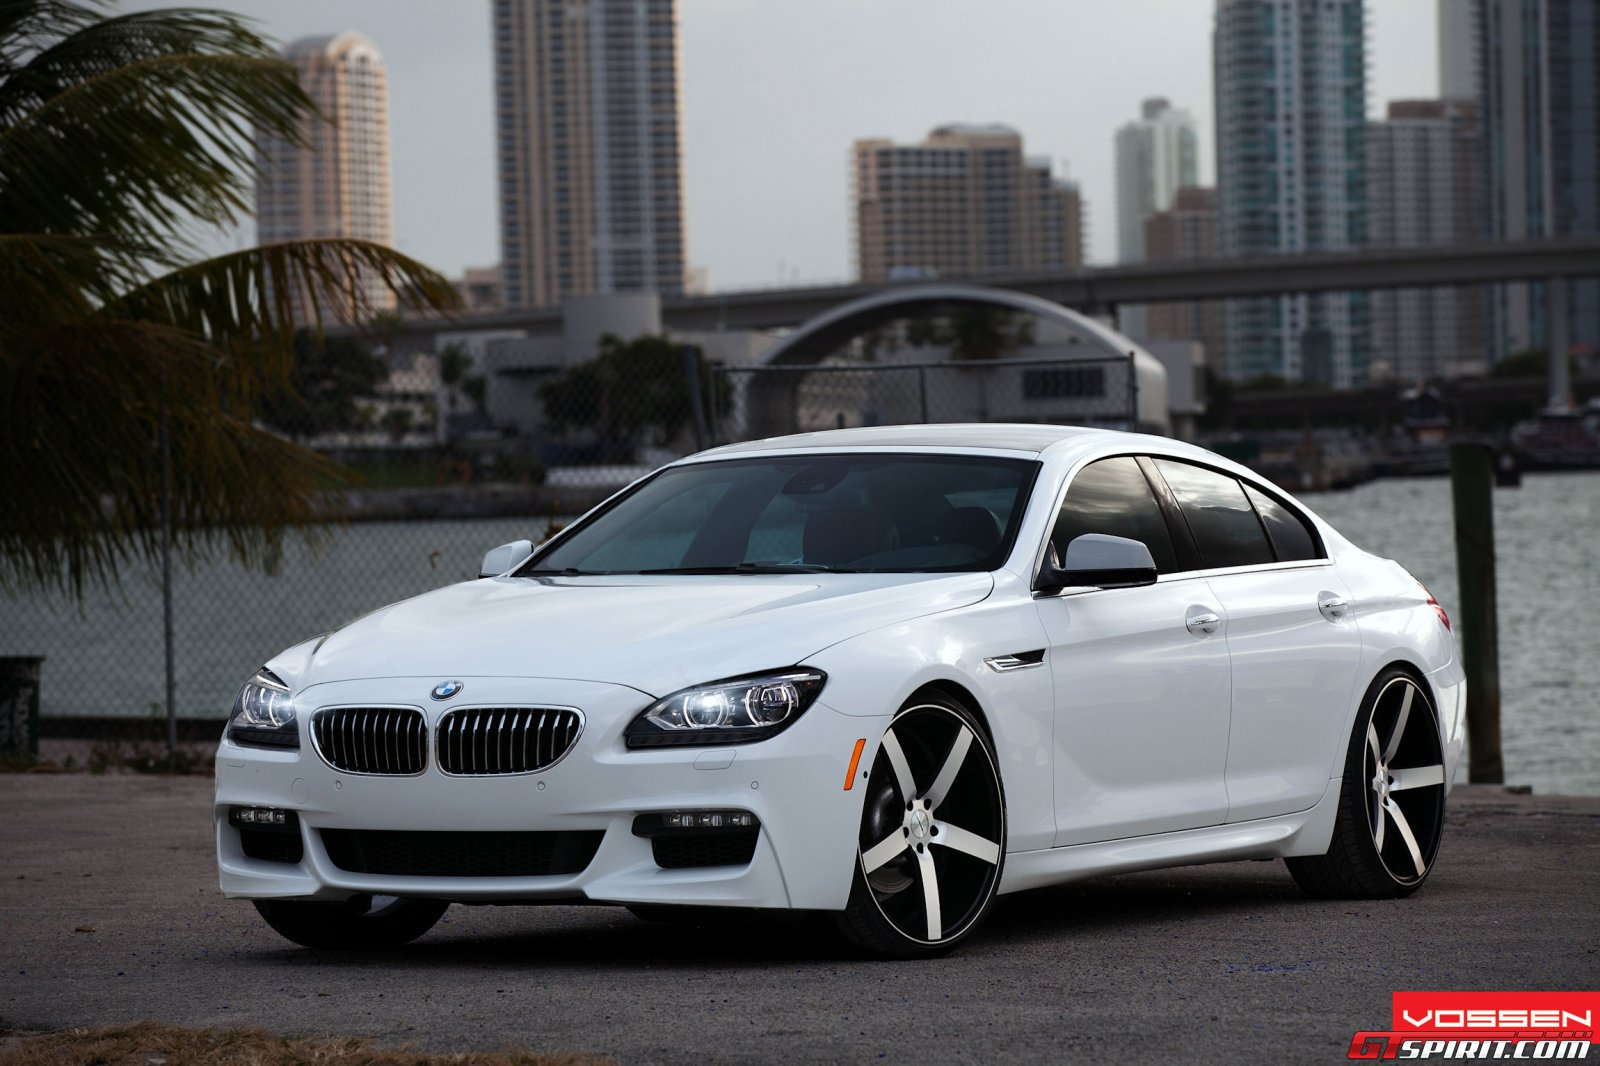 new car spirit 2012 bmw 6 series gran coupe with vossen wheels. Black Bedroom Furniture Sets. Home Design Ideas